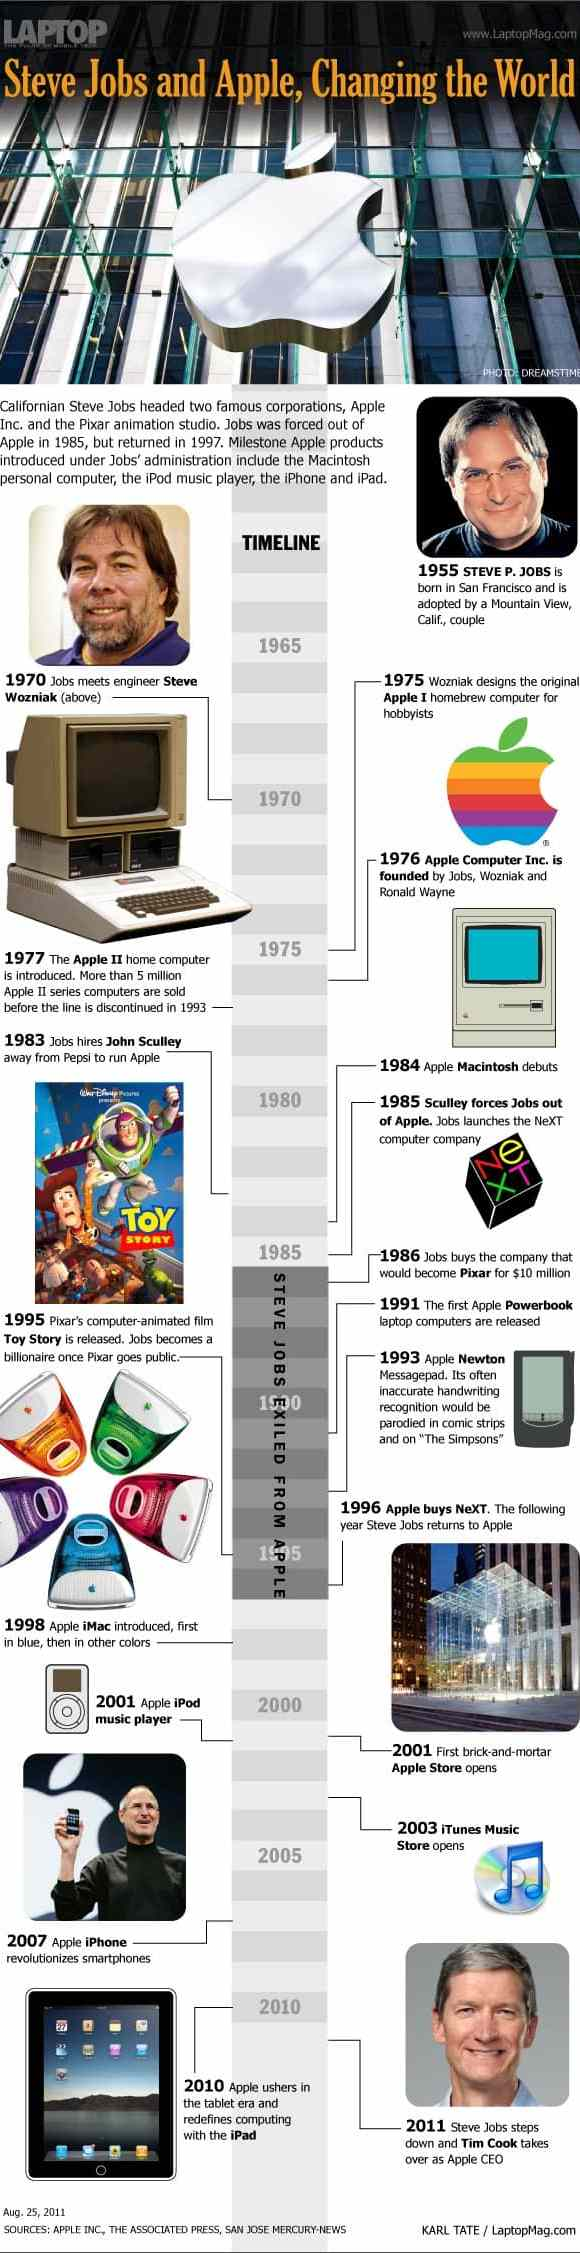 steve jobs apple timeline The Complete Journey of Steve Jobs and Apple [Infographic]